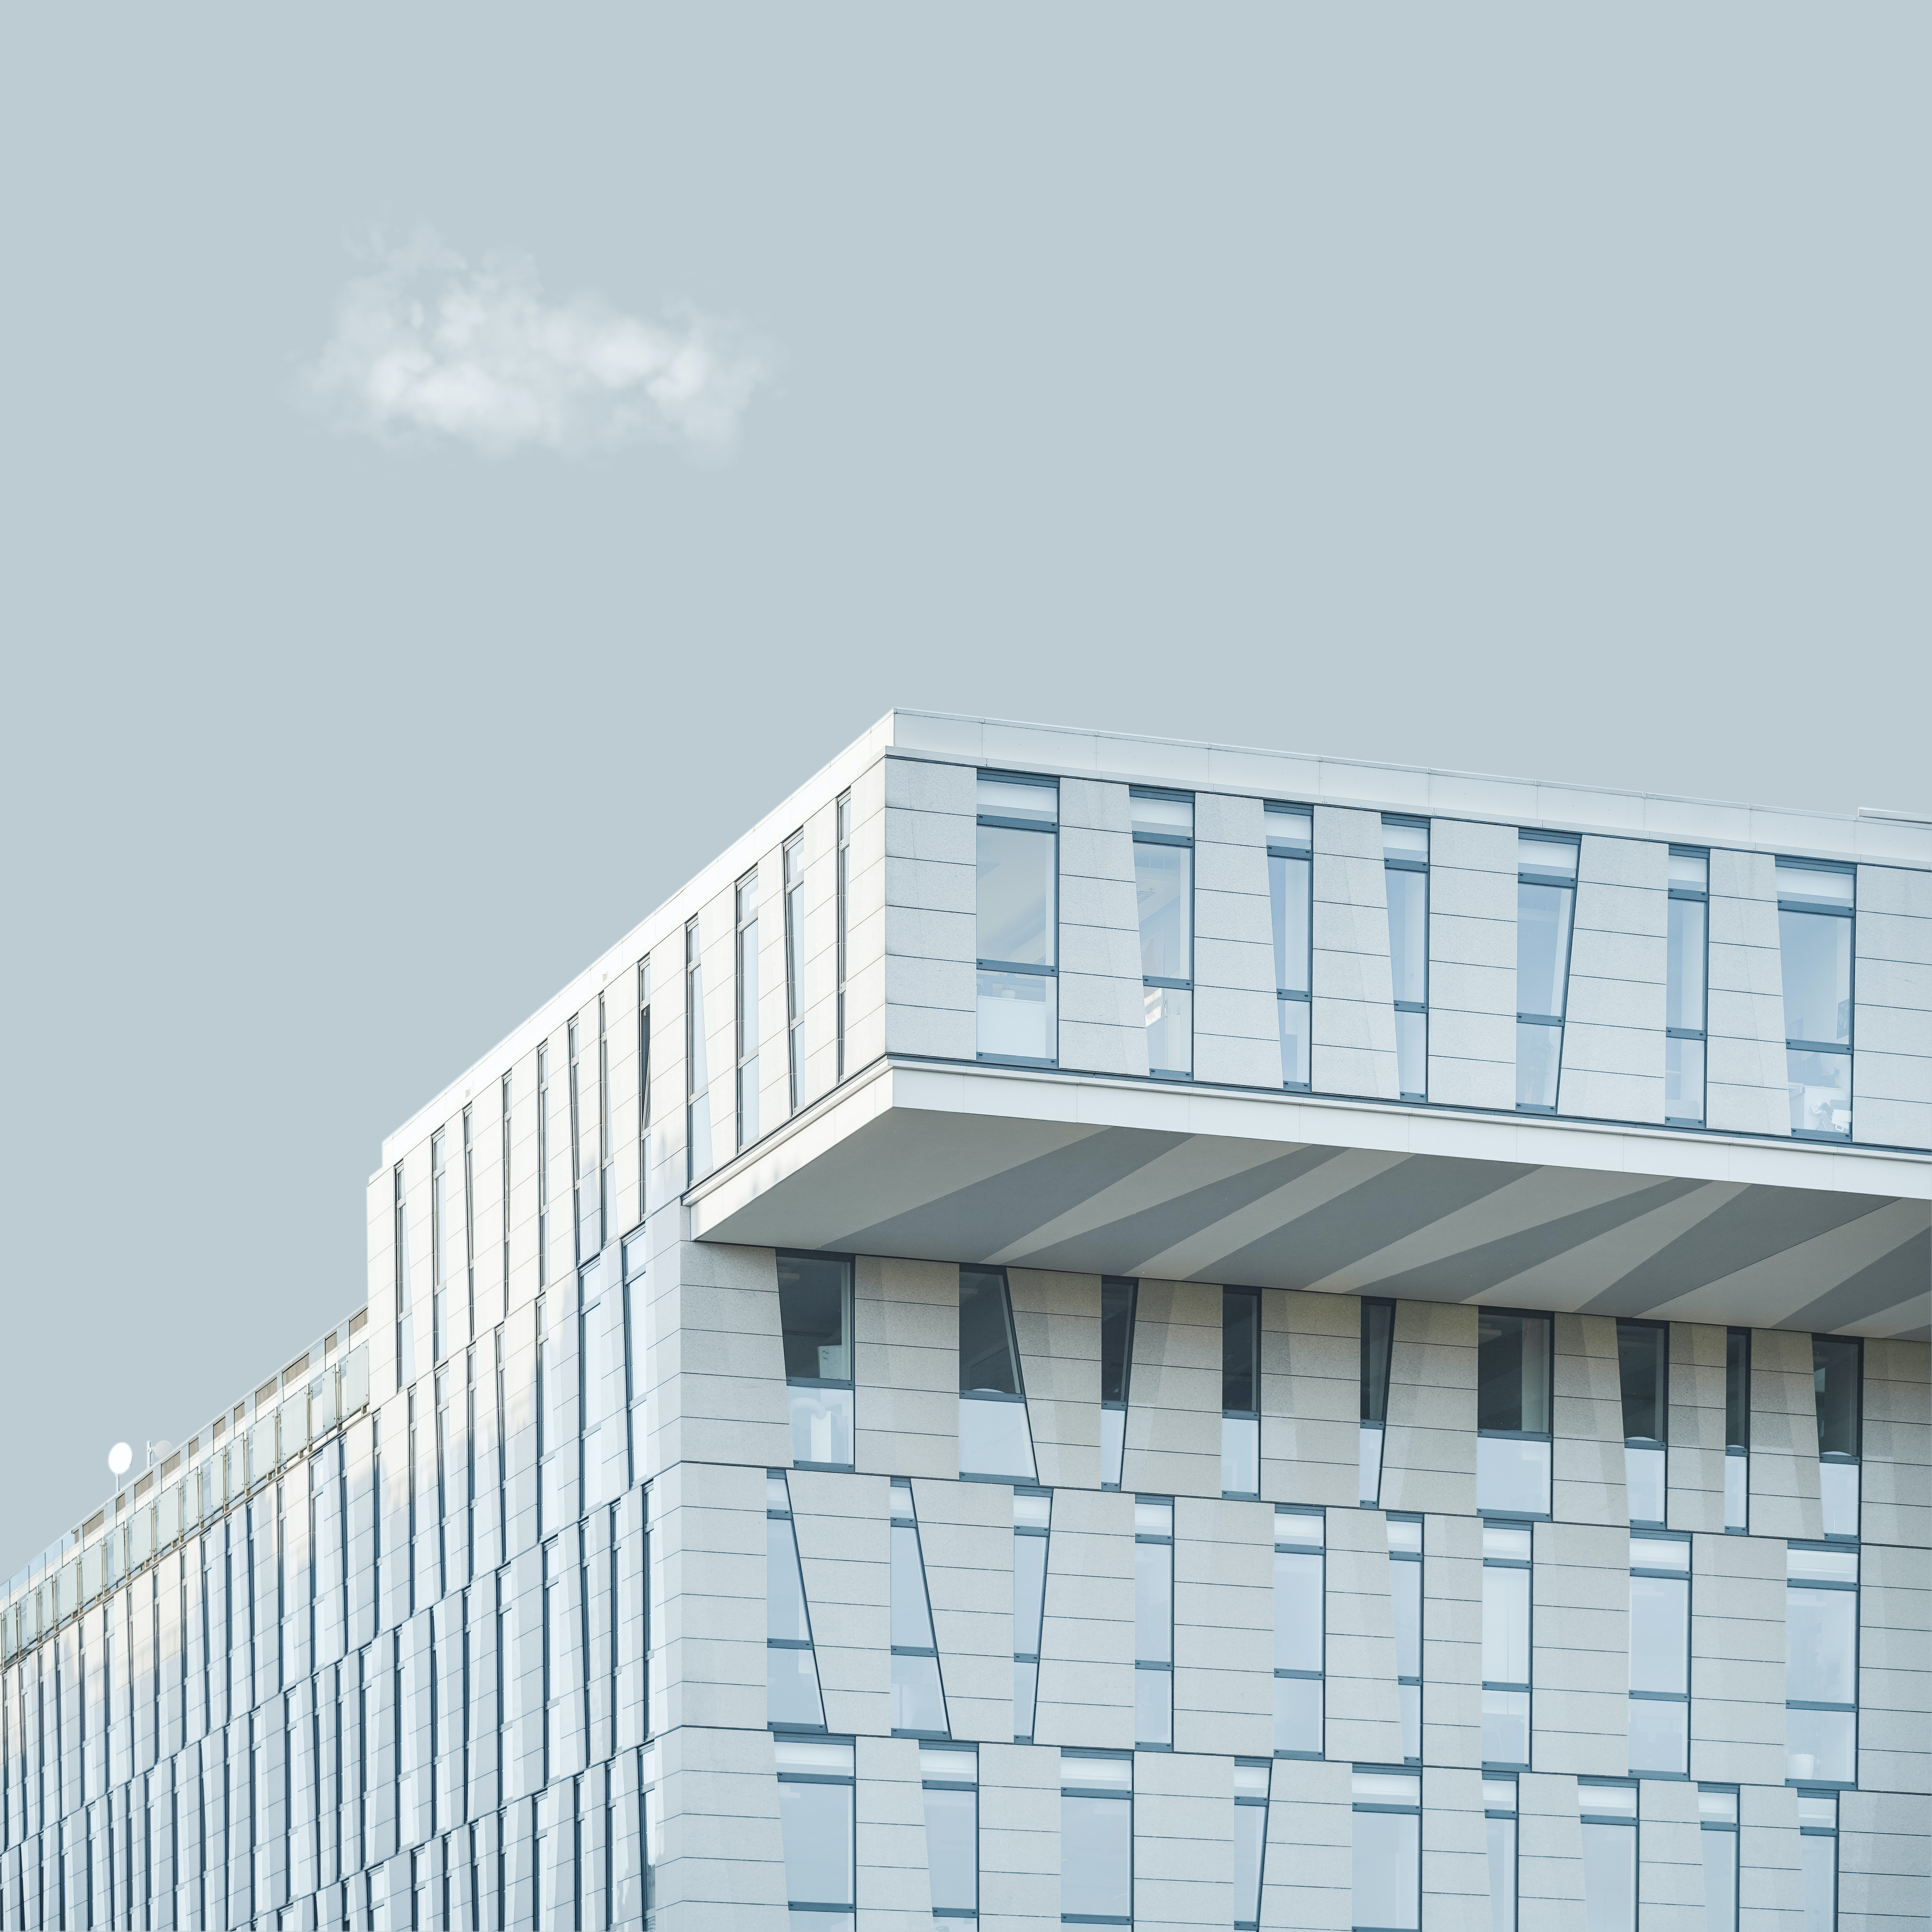 architectural photography of white concrete building